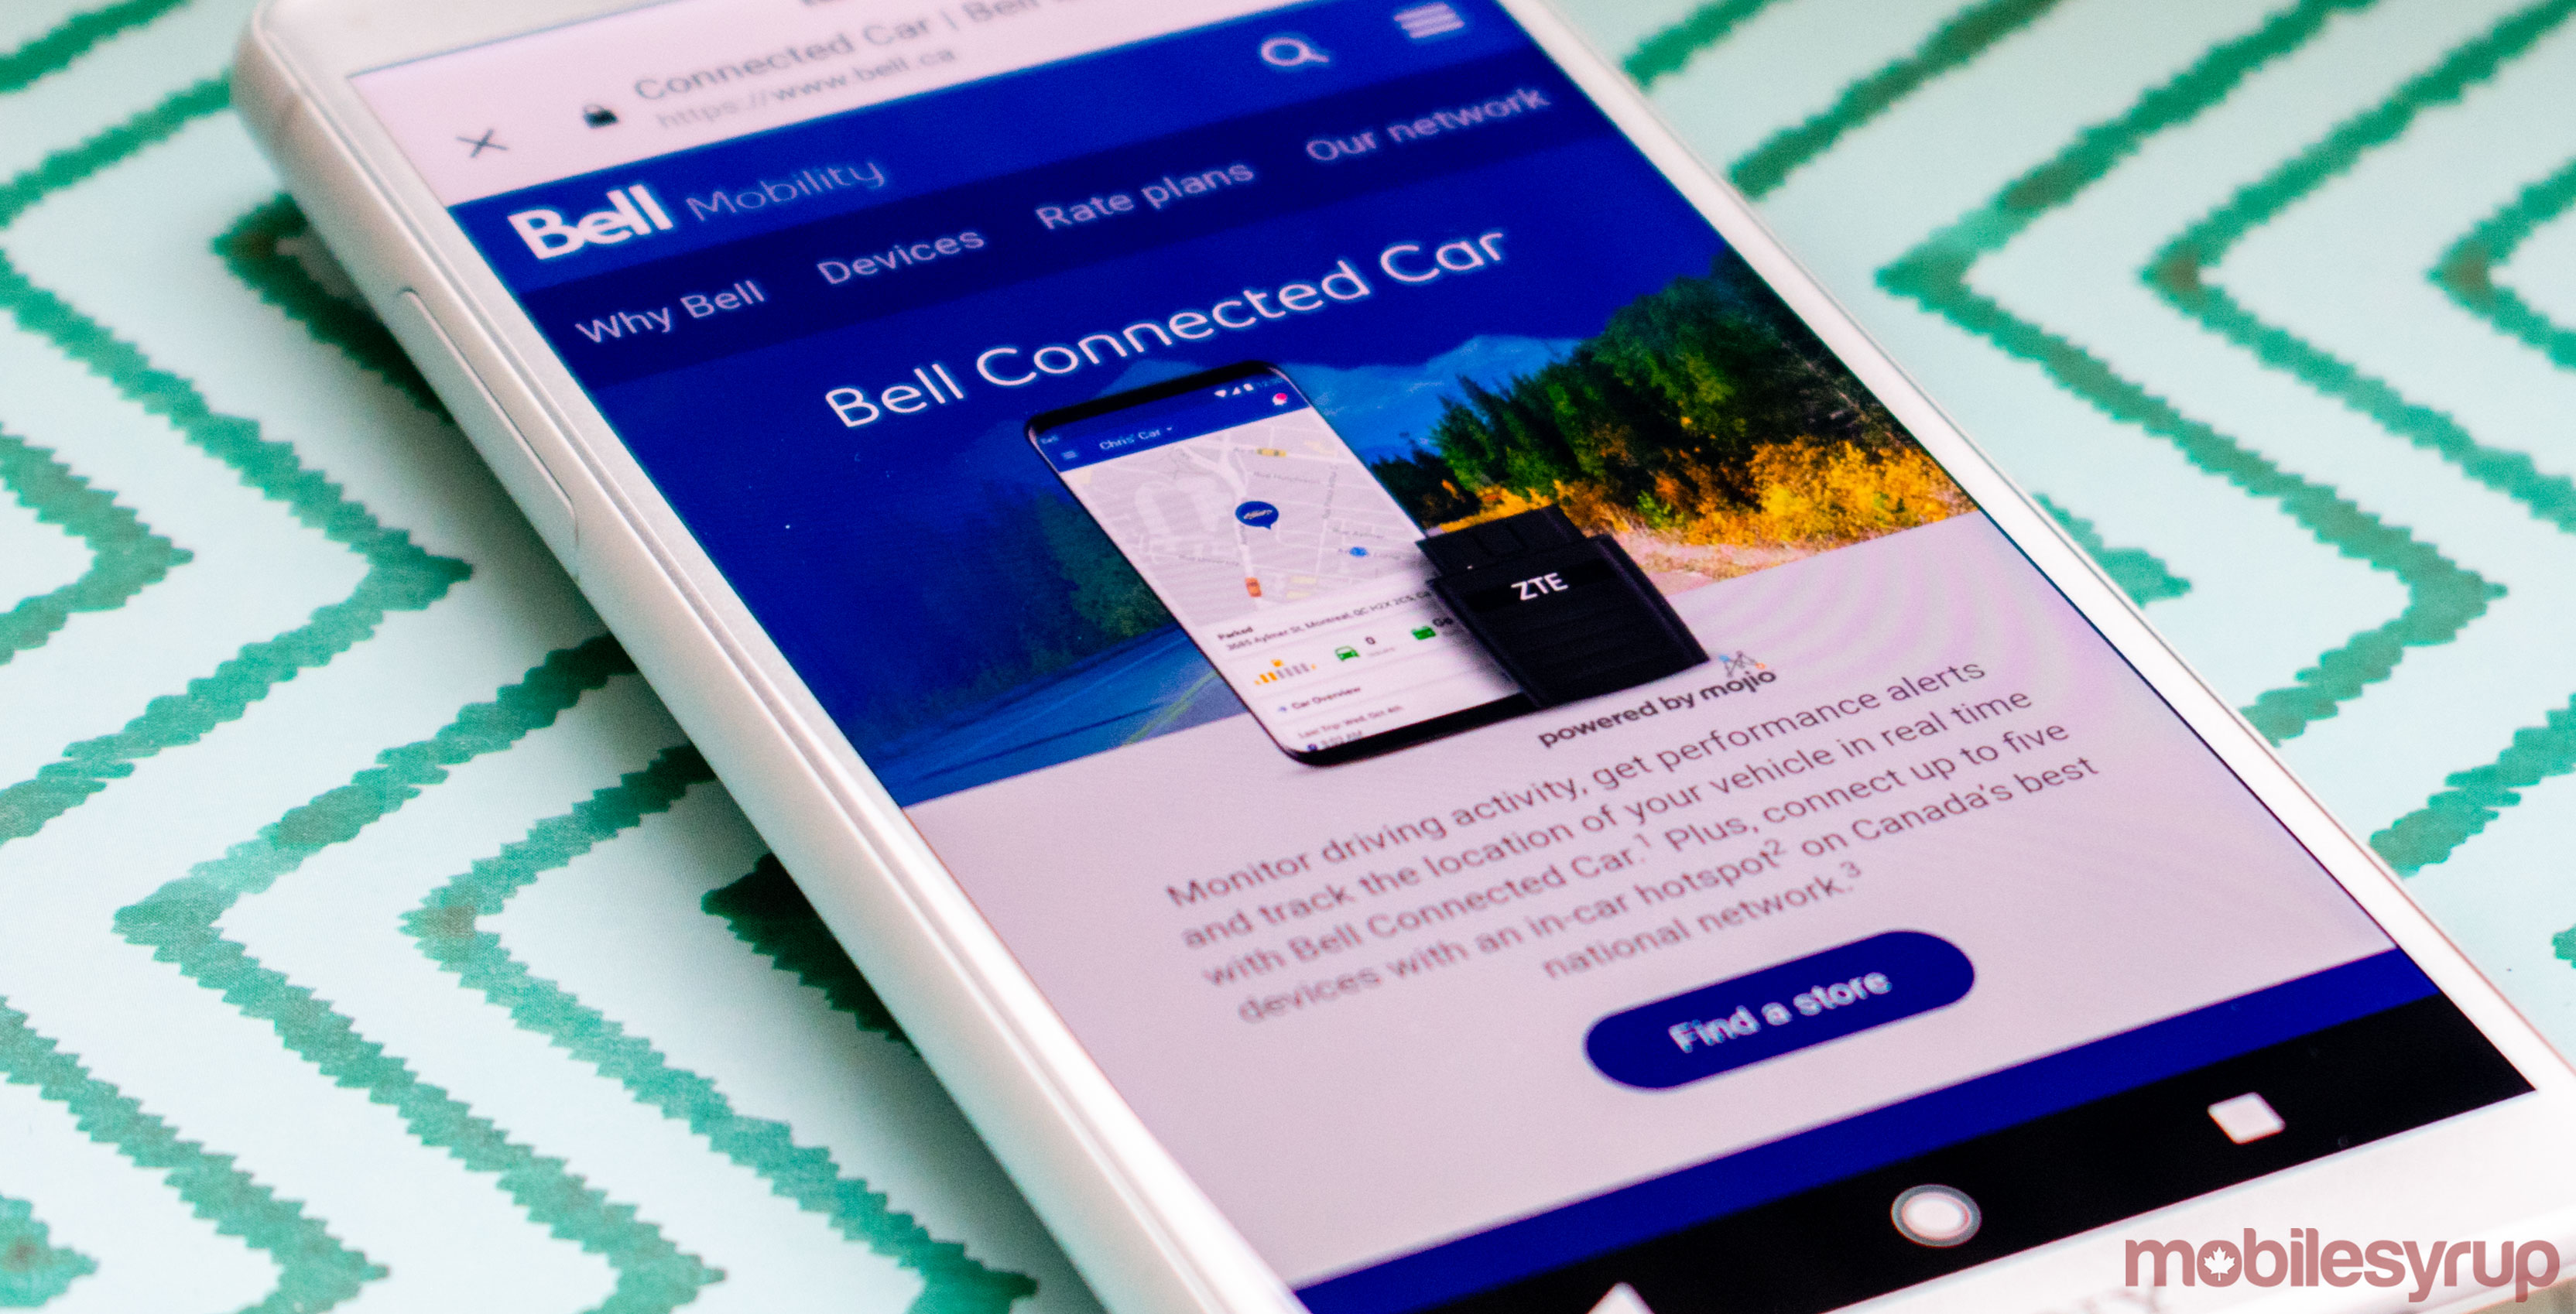 Bell, Ford announce connected car Wi-Fi hotspot partnership